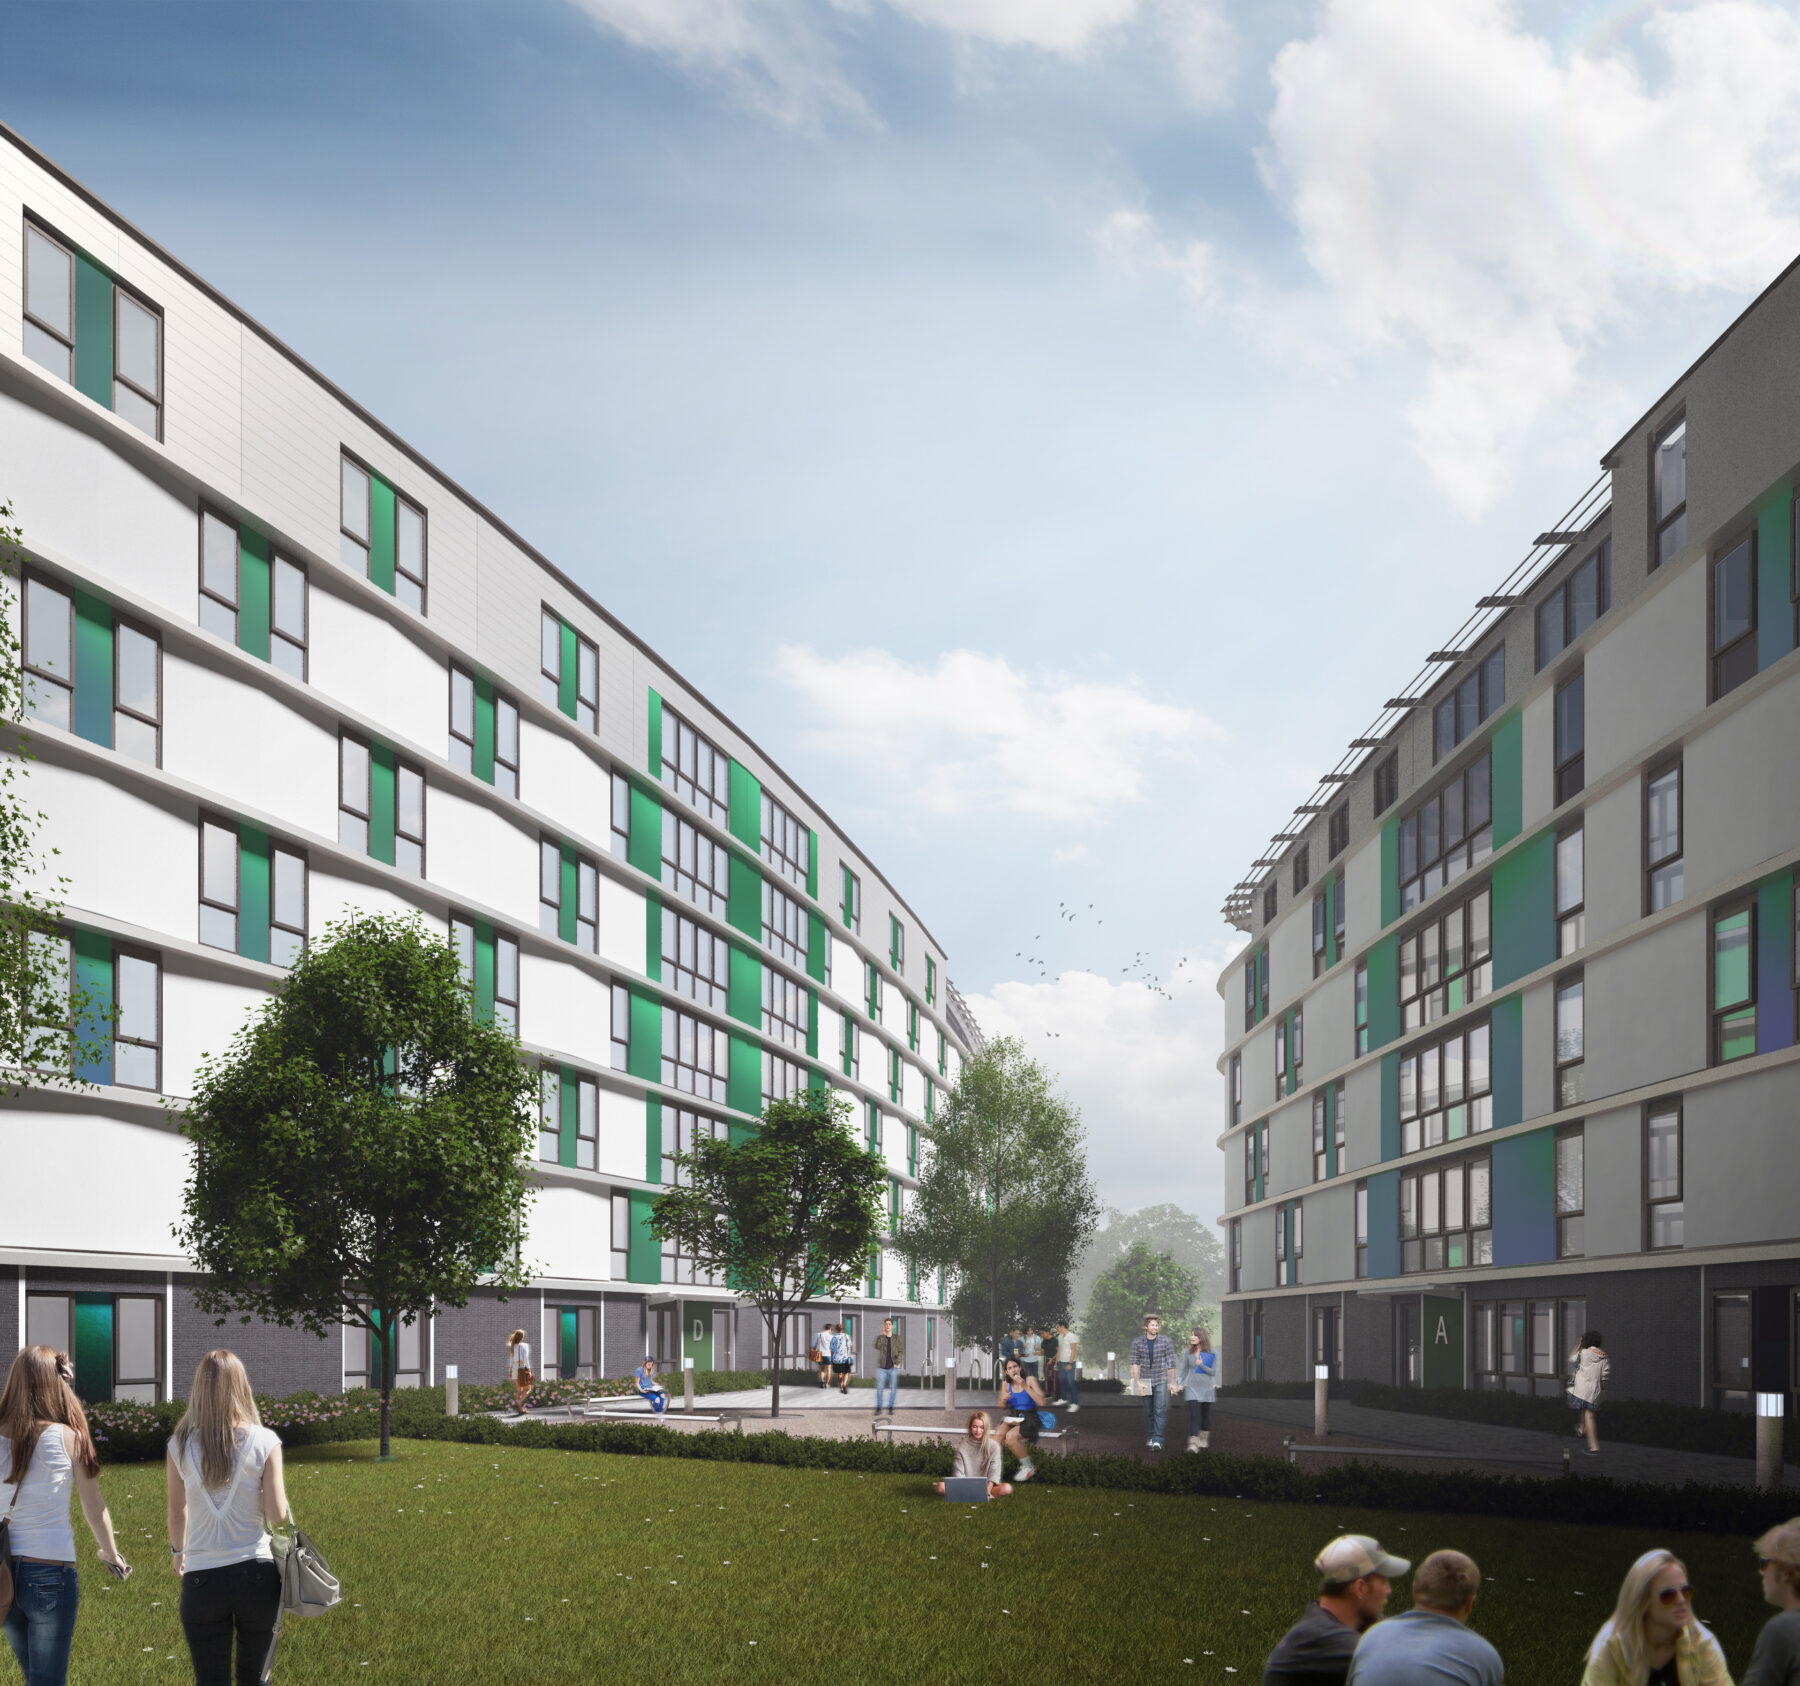 University of Essex Meadows Phase 2A - Bouygues UK Ltd